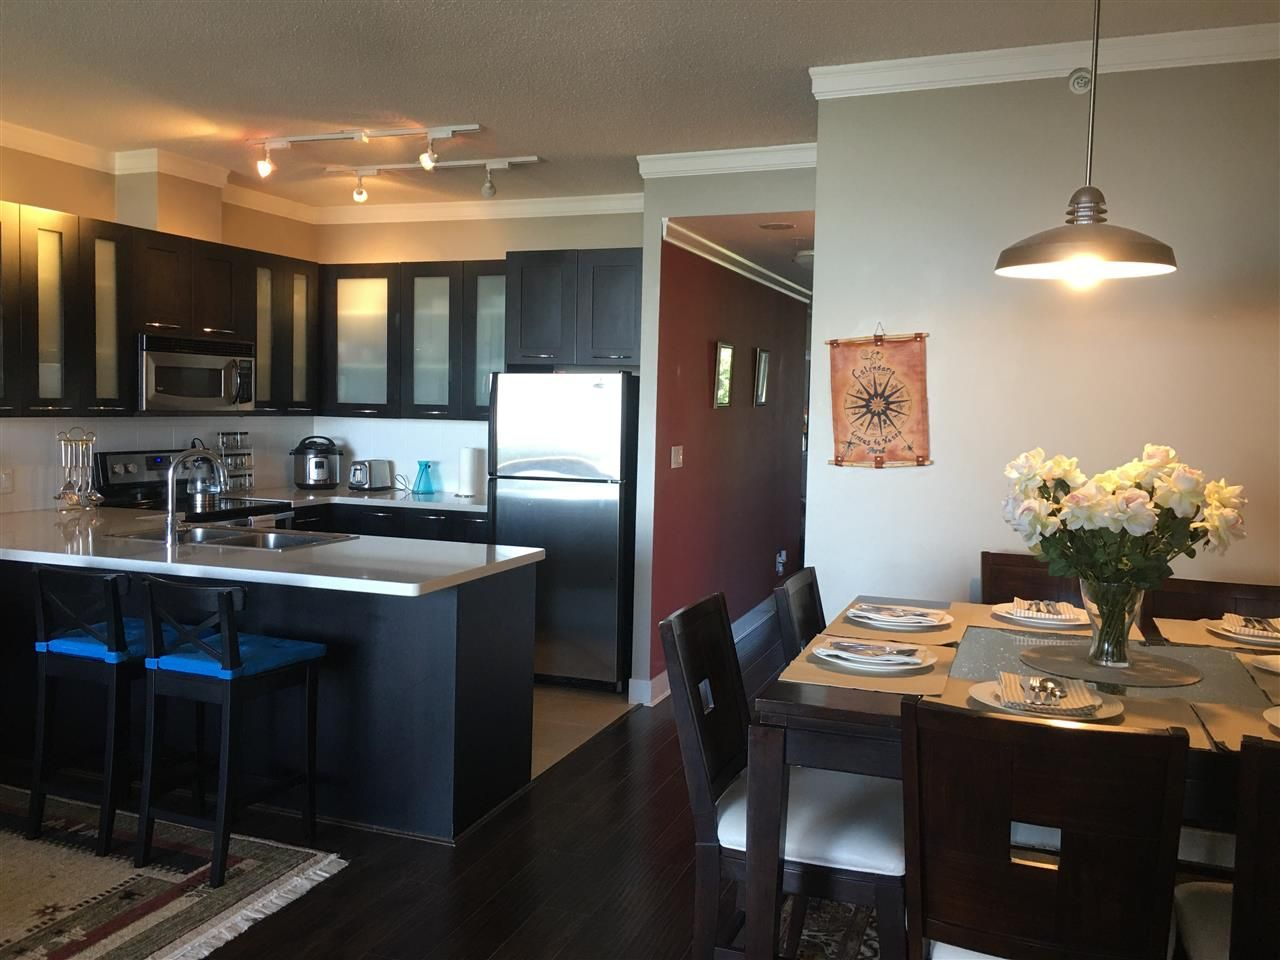 """Main Photo: 700 9300 UNIVERSITY Crescent in Burnaby: Simon Fraser Univer. Condo for sale in """"ONE UNIVERSITY"""" (Burnaby North)  : MLS®# R2479456"""